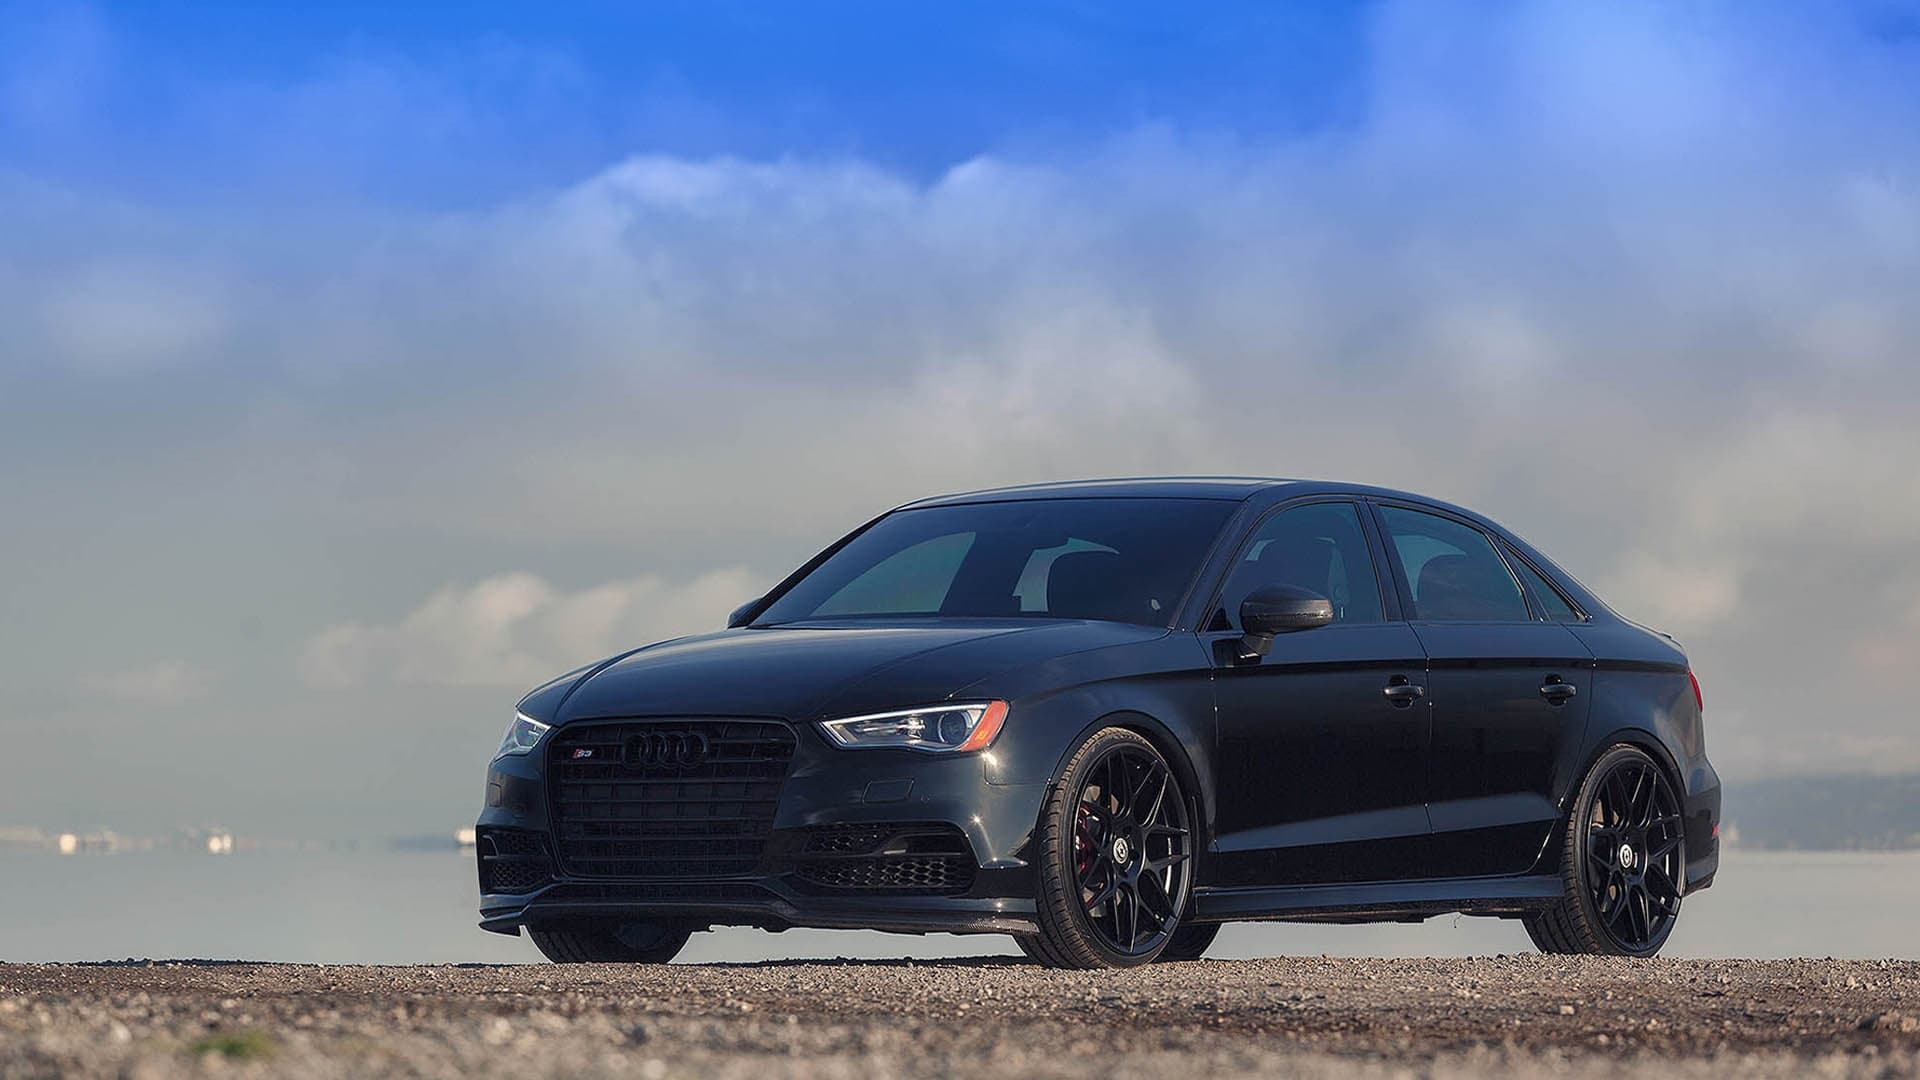 2016 Audi S3 Sedan Wallpapers High Quality Resolution Download 1920x1080